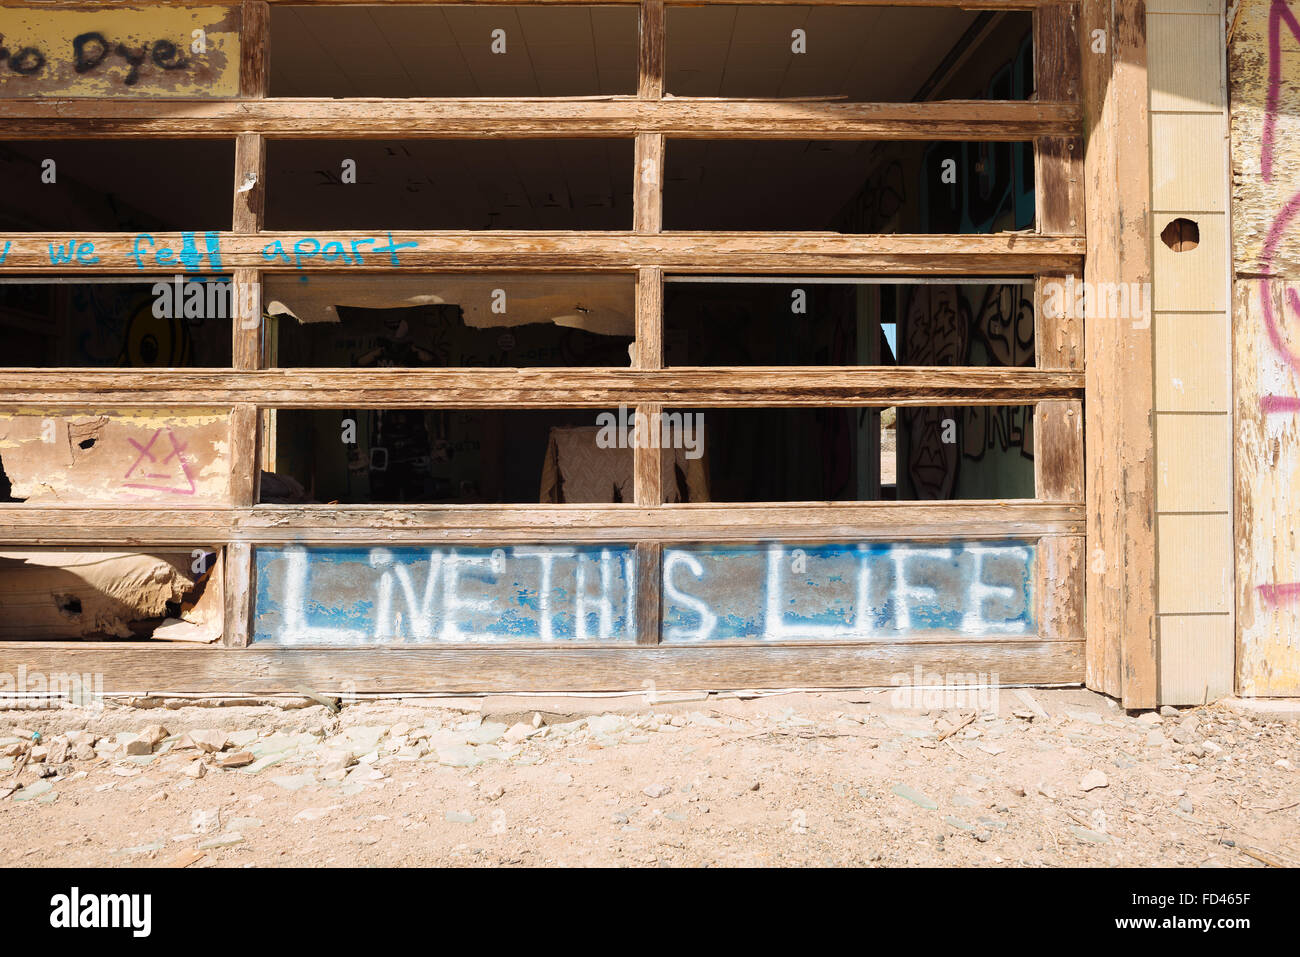 An abandoned building in Bombay Beach, California, on the eastern shore of the Salton Sea - Stock Image